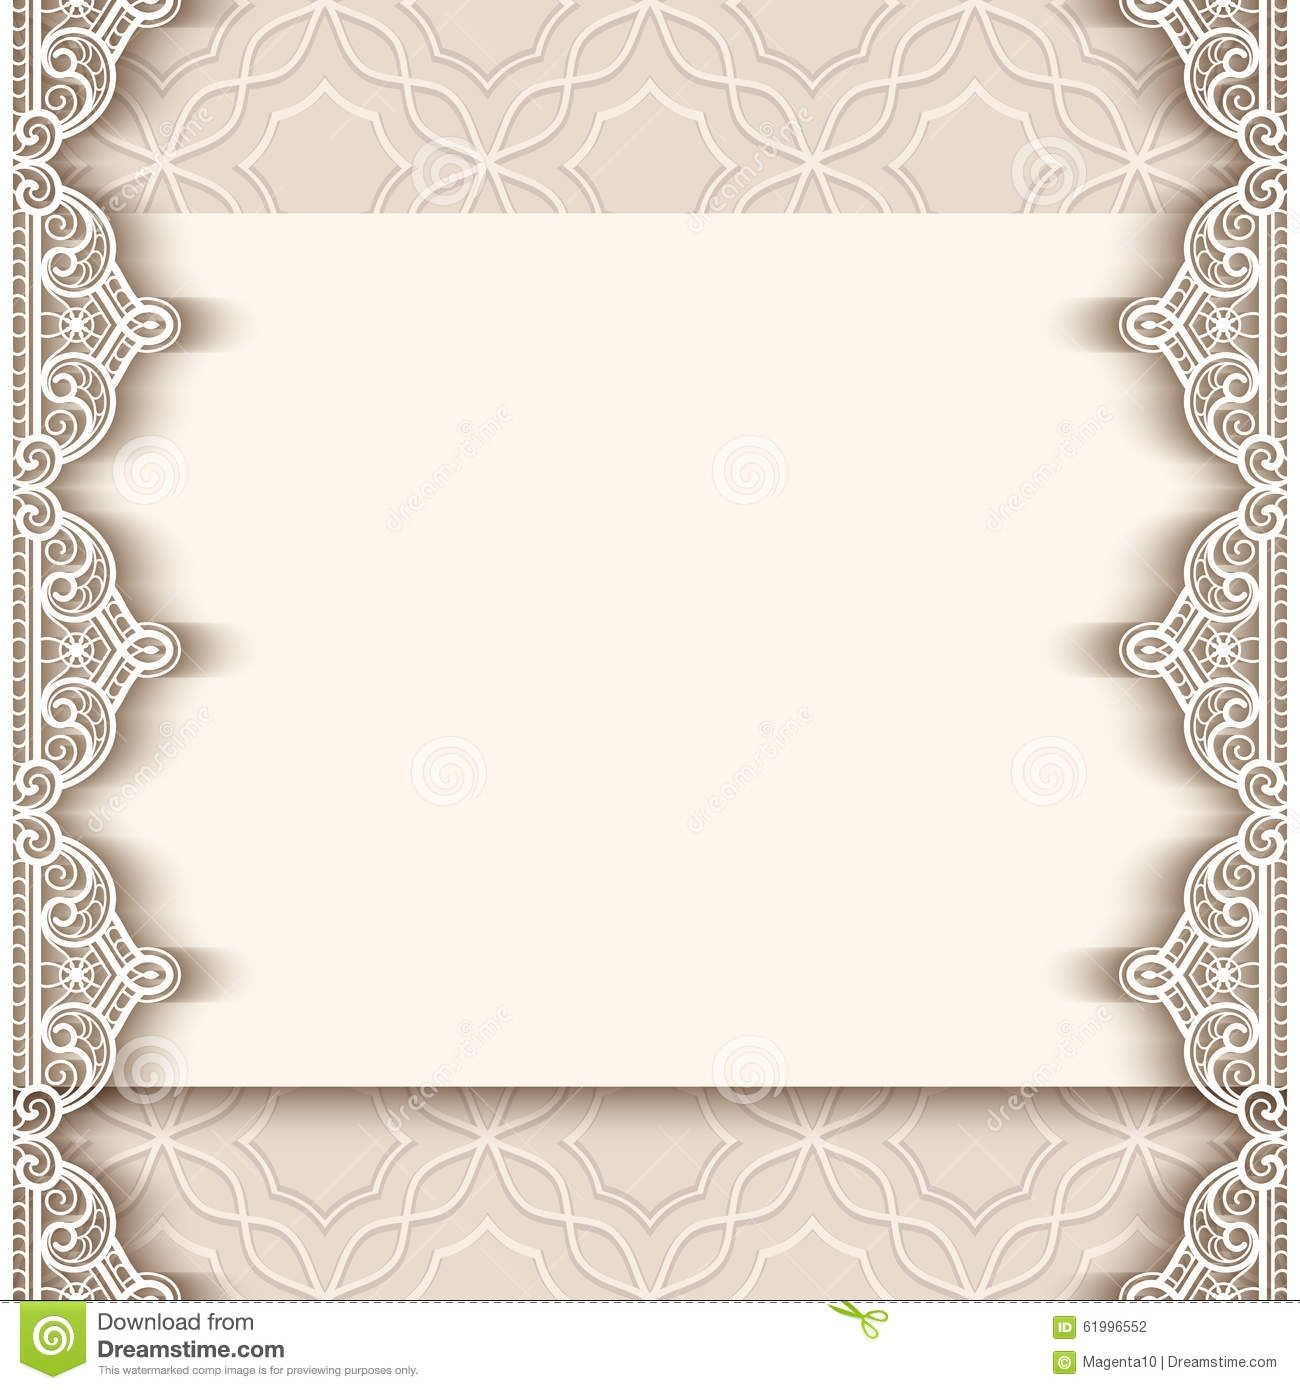 Download background images with borders - Vintage Paper Background ...